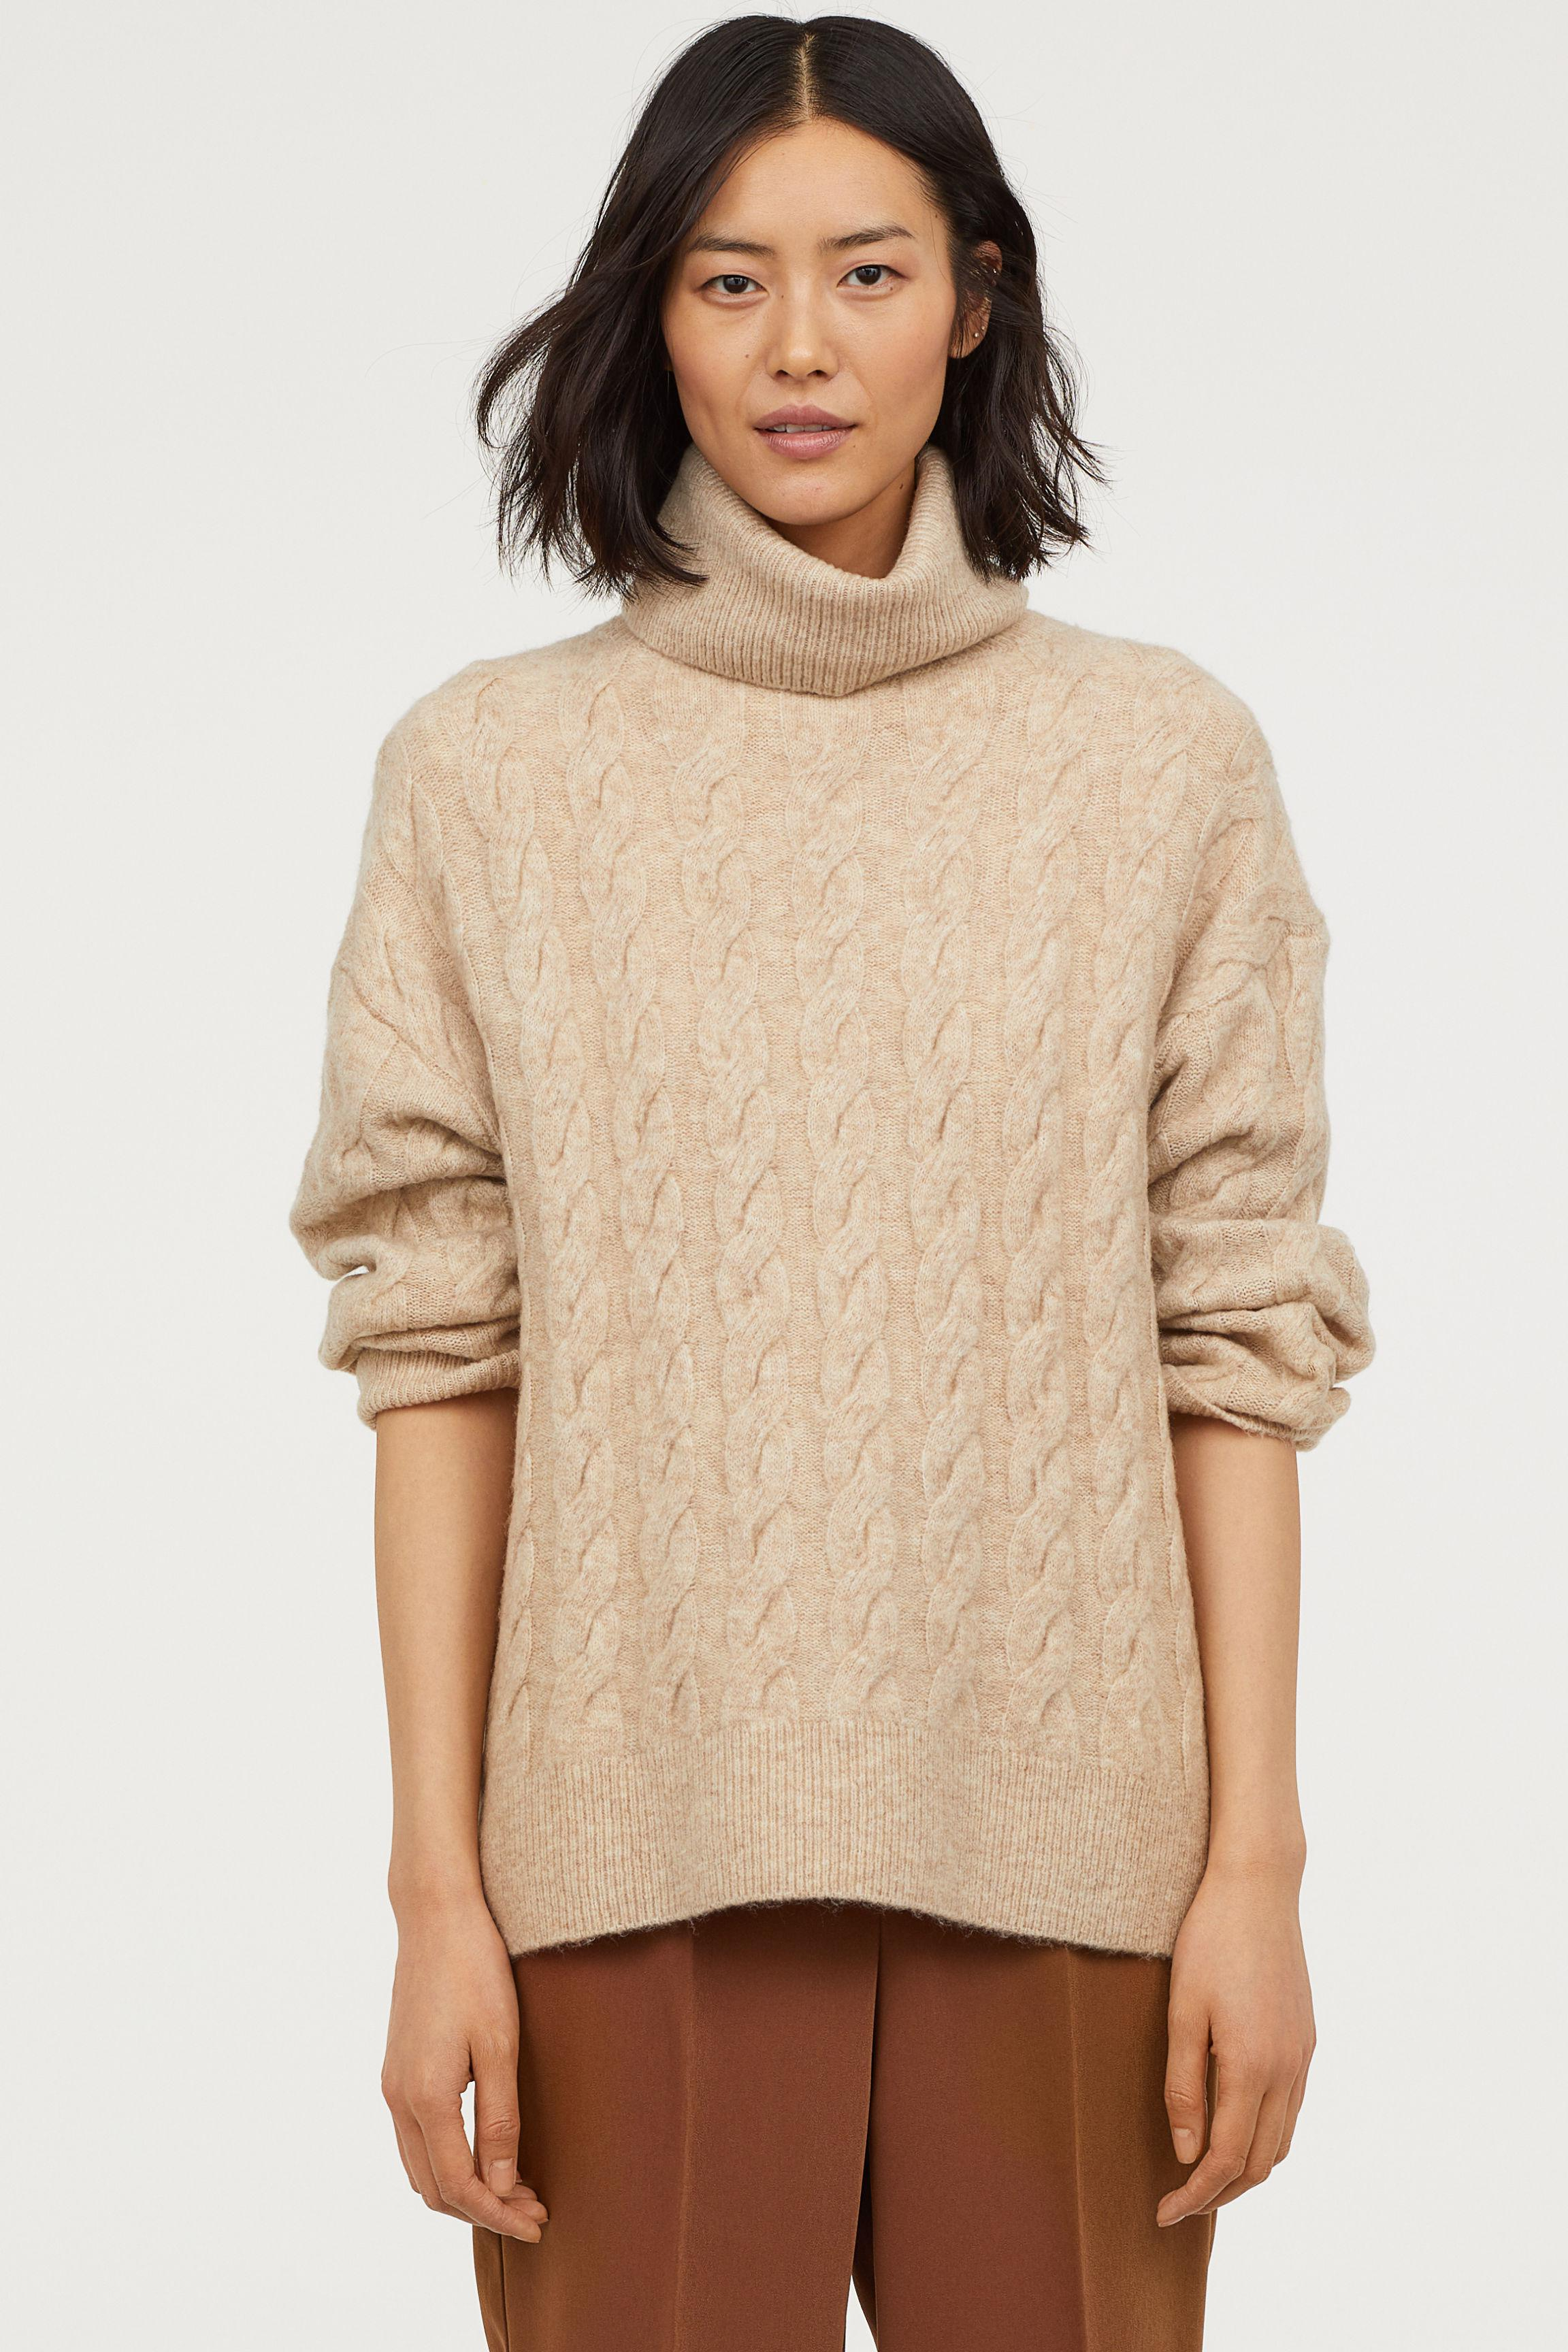 Lyst - H M Cable-knit Turtleneck Sweater in Natural 2c620cb55